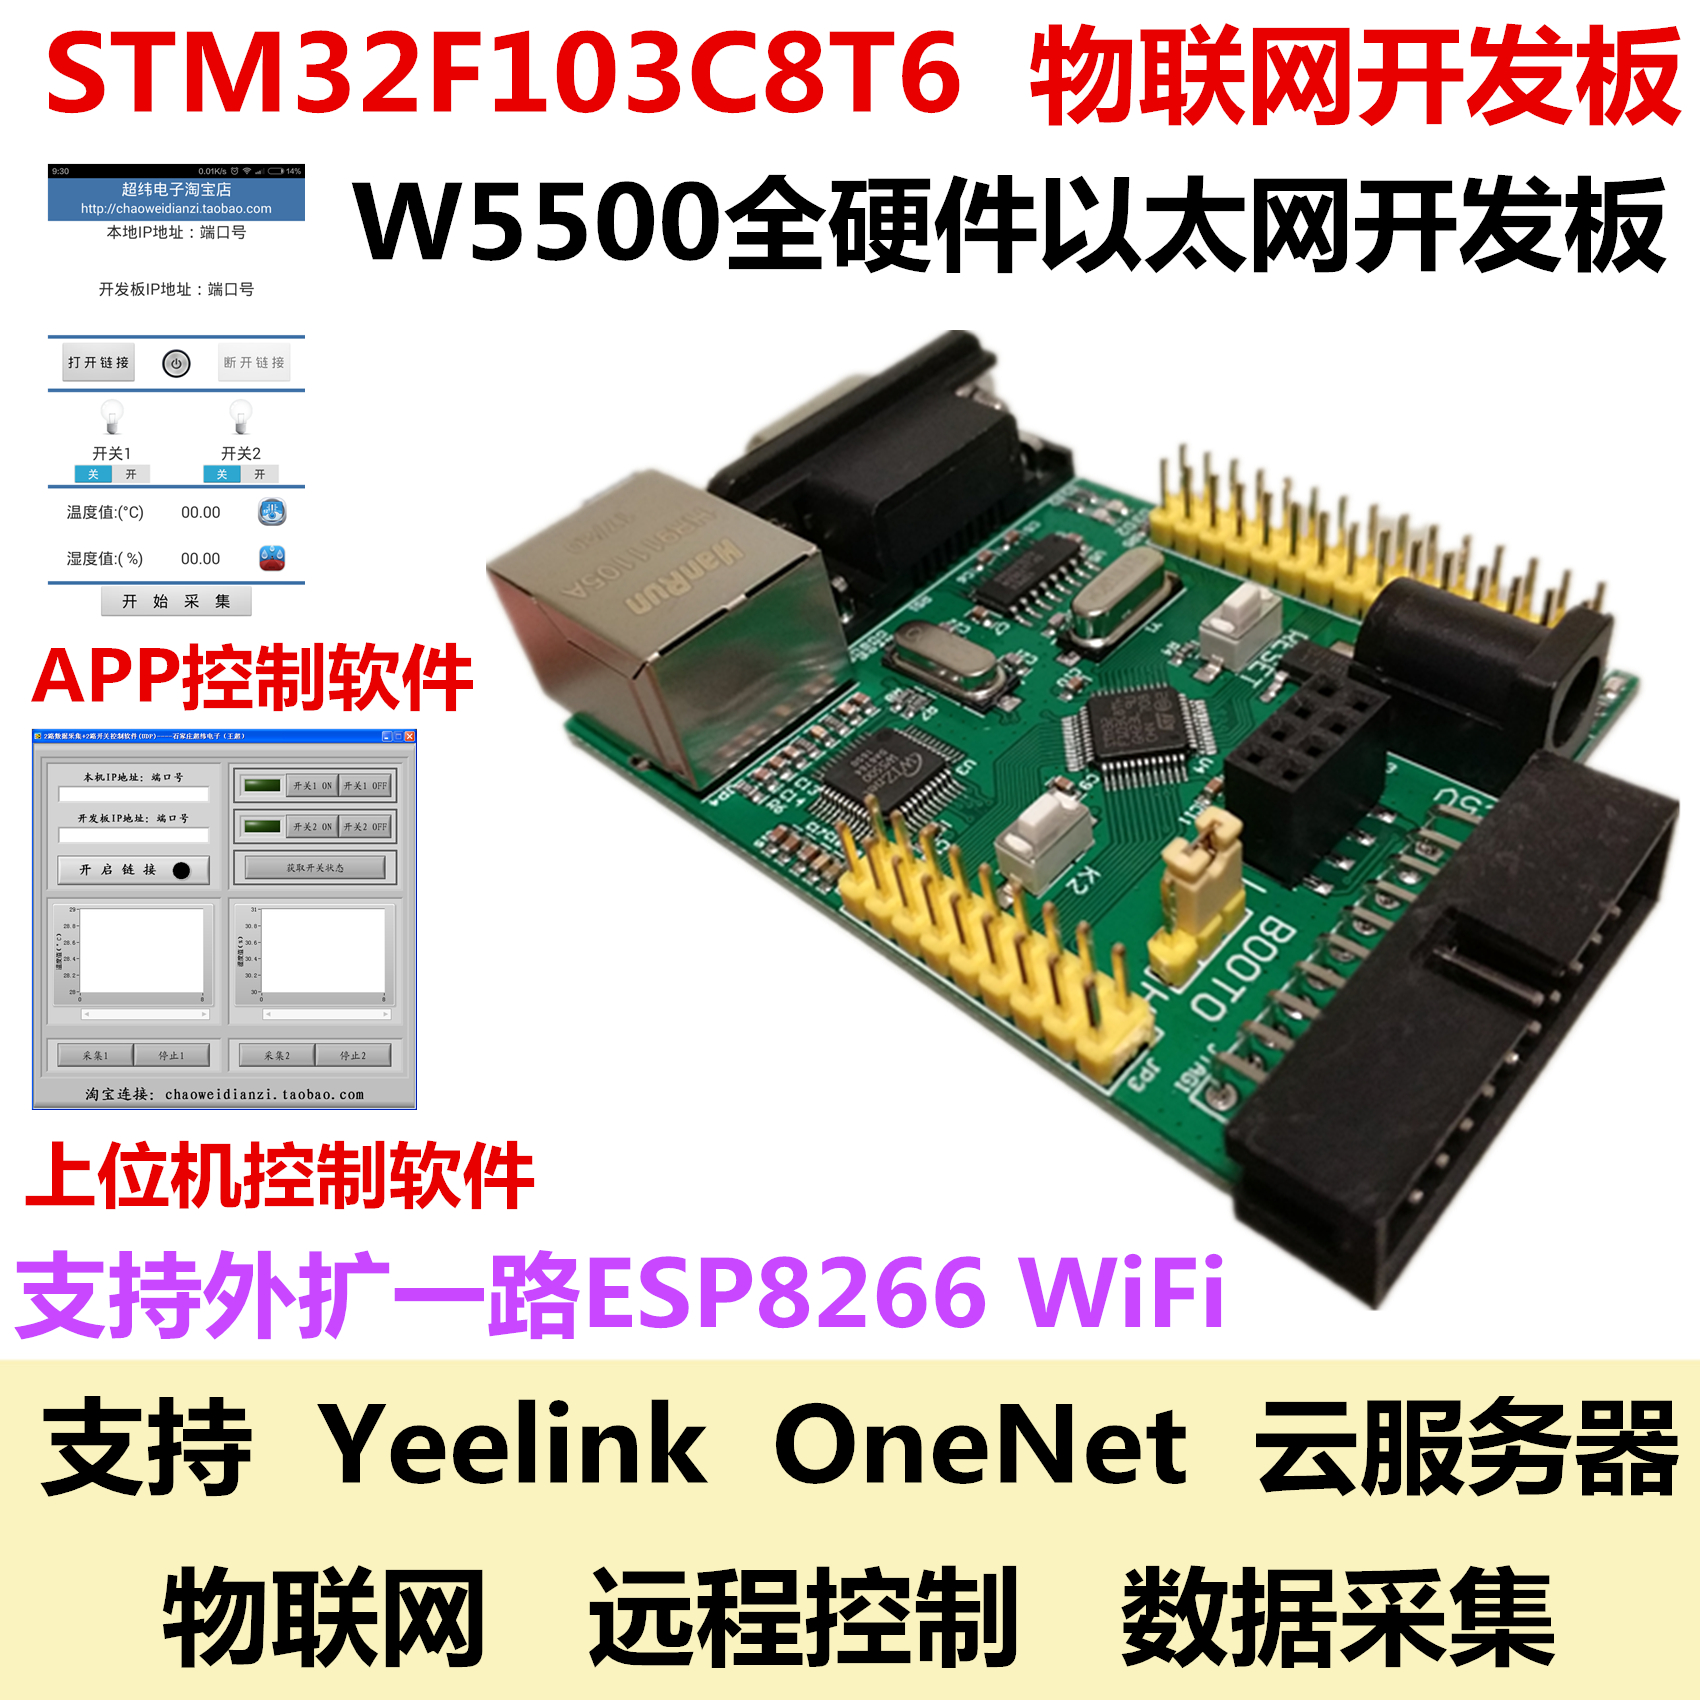 Internet of Things, WiFi STM32 W5500 Development Board, Hardware Ethernet Module, Remote Control Cloud Service doit arduino ide for esp32 module wifi and bluetooth development board ethernet internet wireless transceiver control board